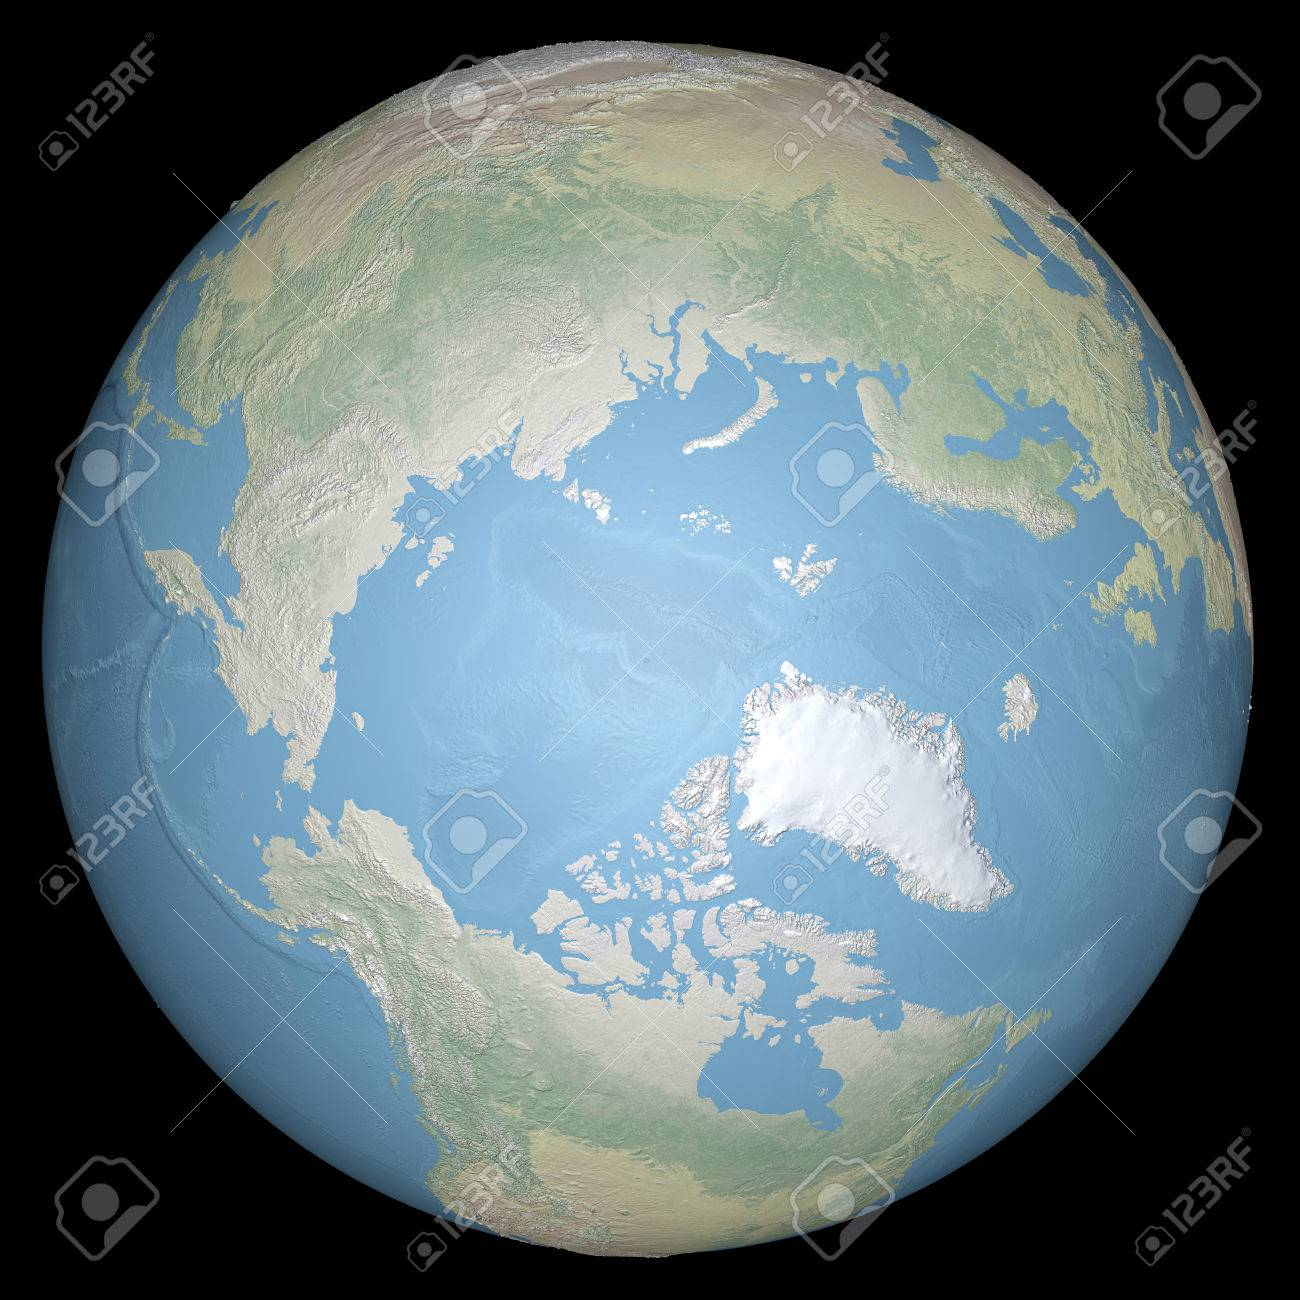 Relief Map Of The World.World Earth Globe Arctic North Pole Relief Map Stock Photo